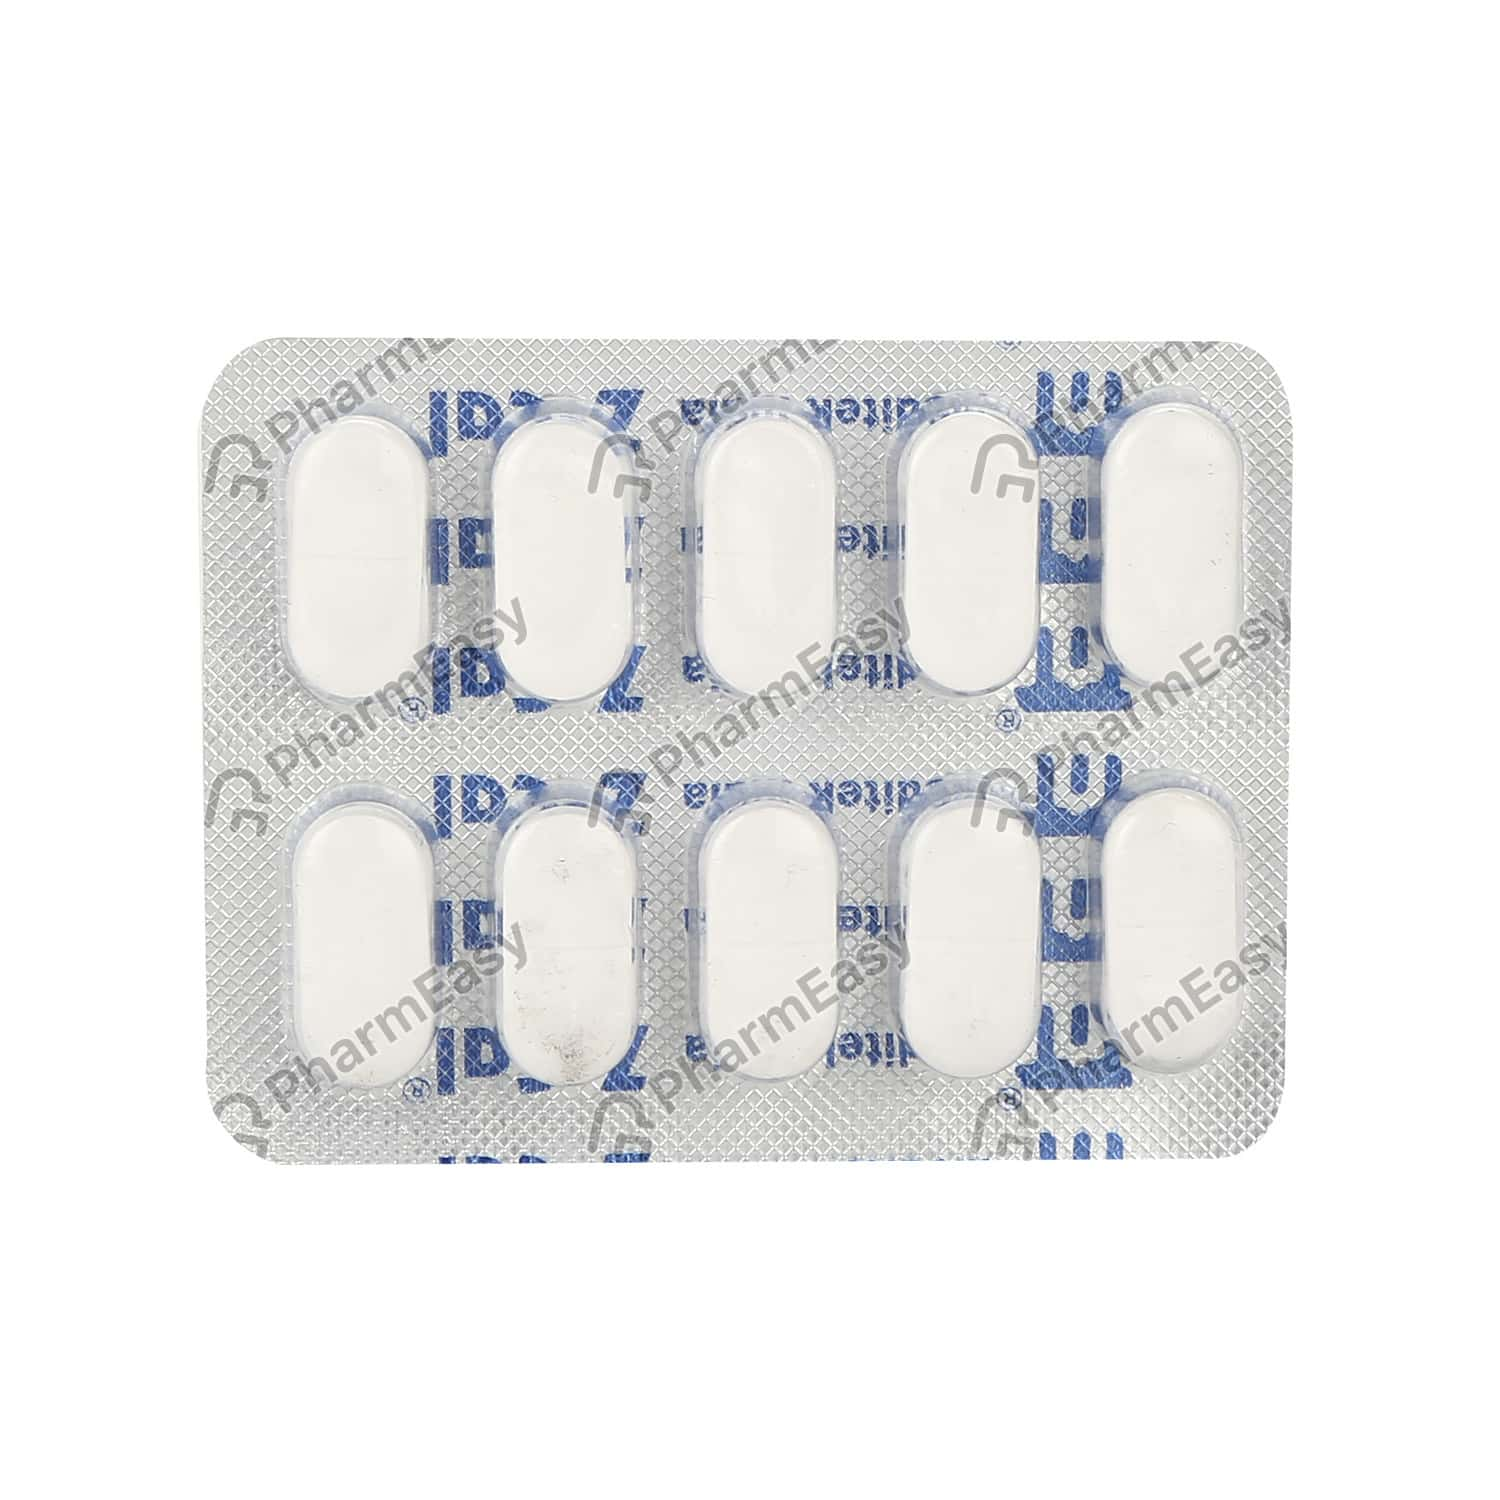 Z Cal Strip Of 10 Tablets